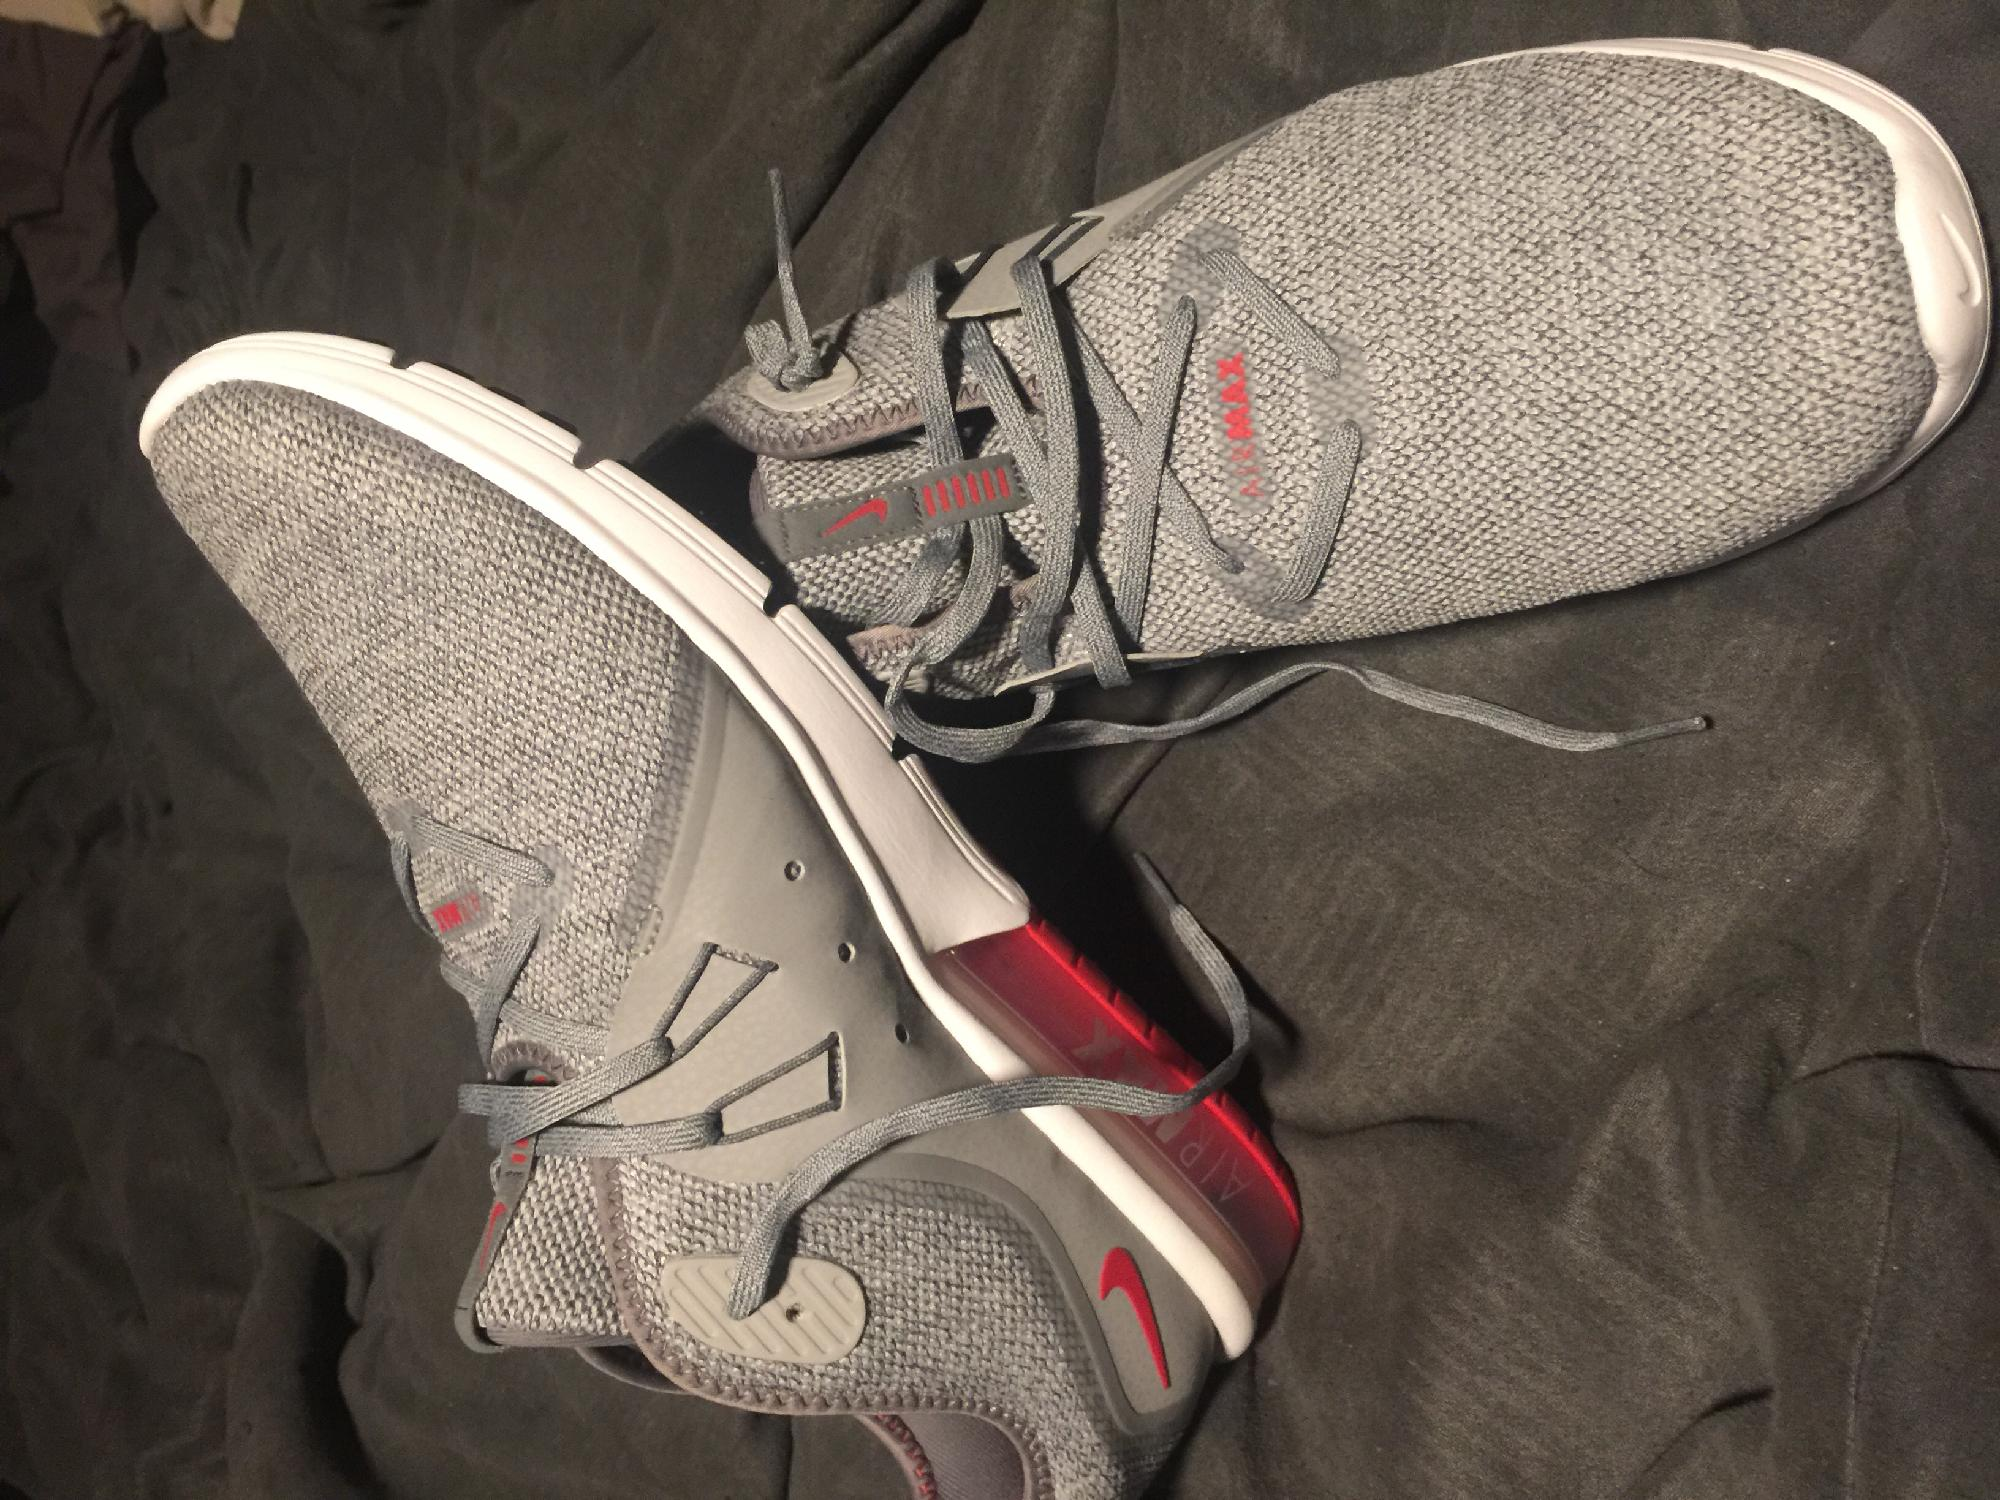 Nike Air Max Sequent 3 Reviews Zappos | Zappos Reviews 23690b